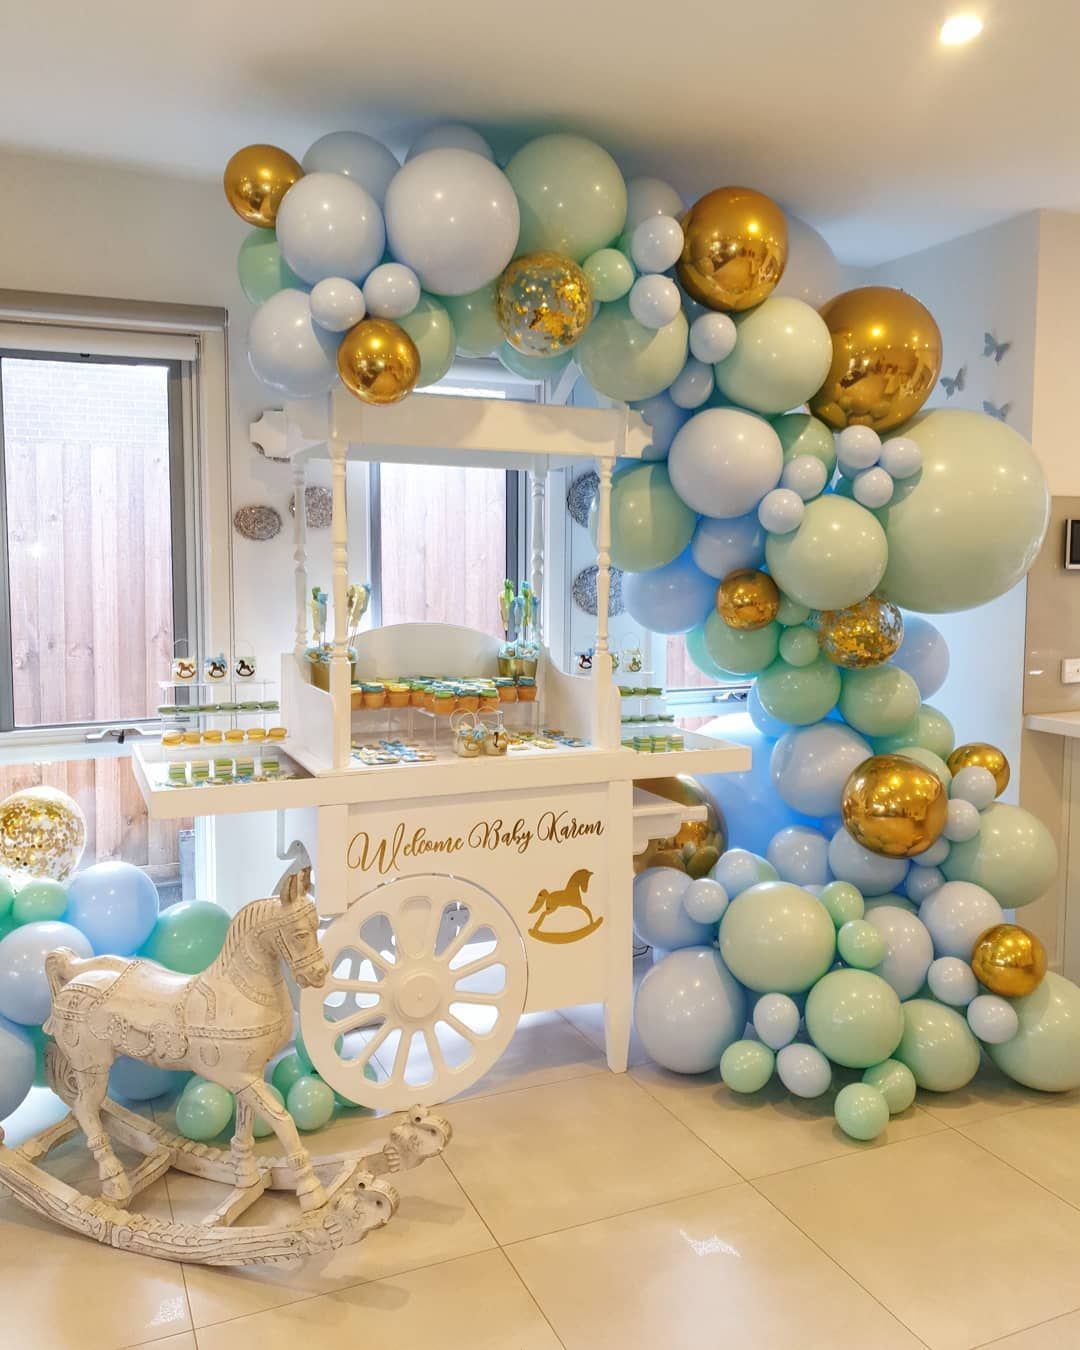 Baby Boys Baby Shower Ideas Look At This Amazing Balloon Garland And Set Up Candy Cart Welcome Bab Pastel Balloons Balloon Garland Baby Shower Decorations